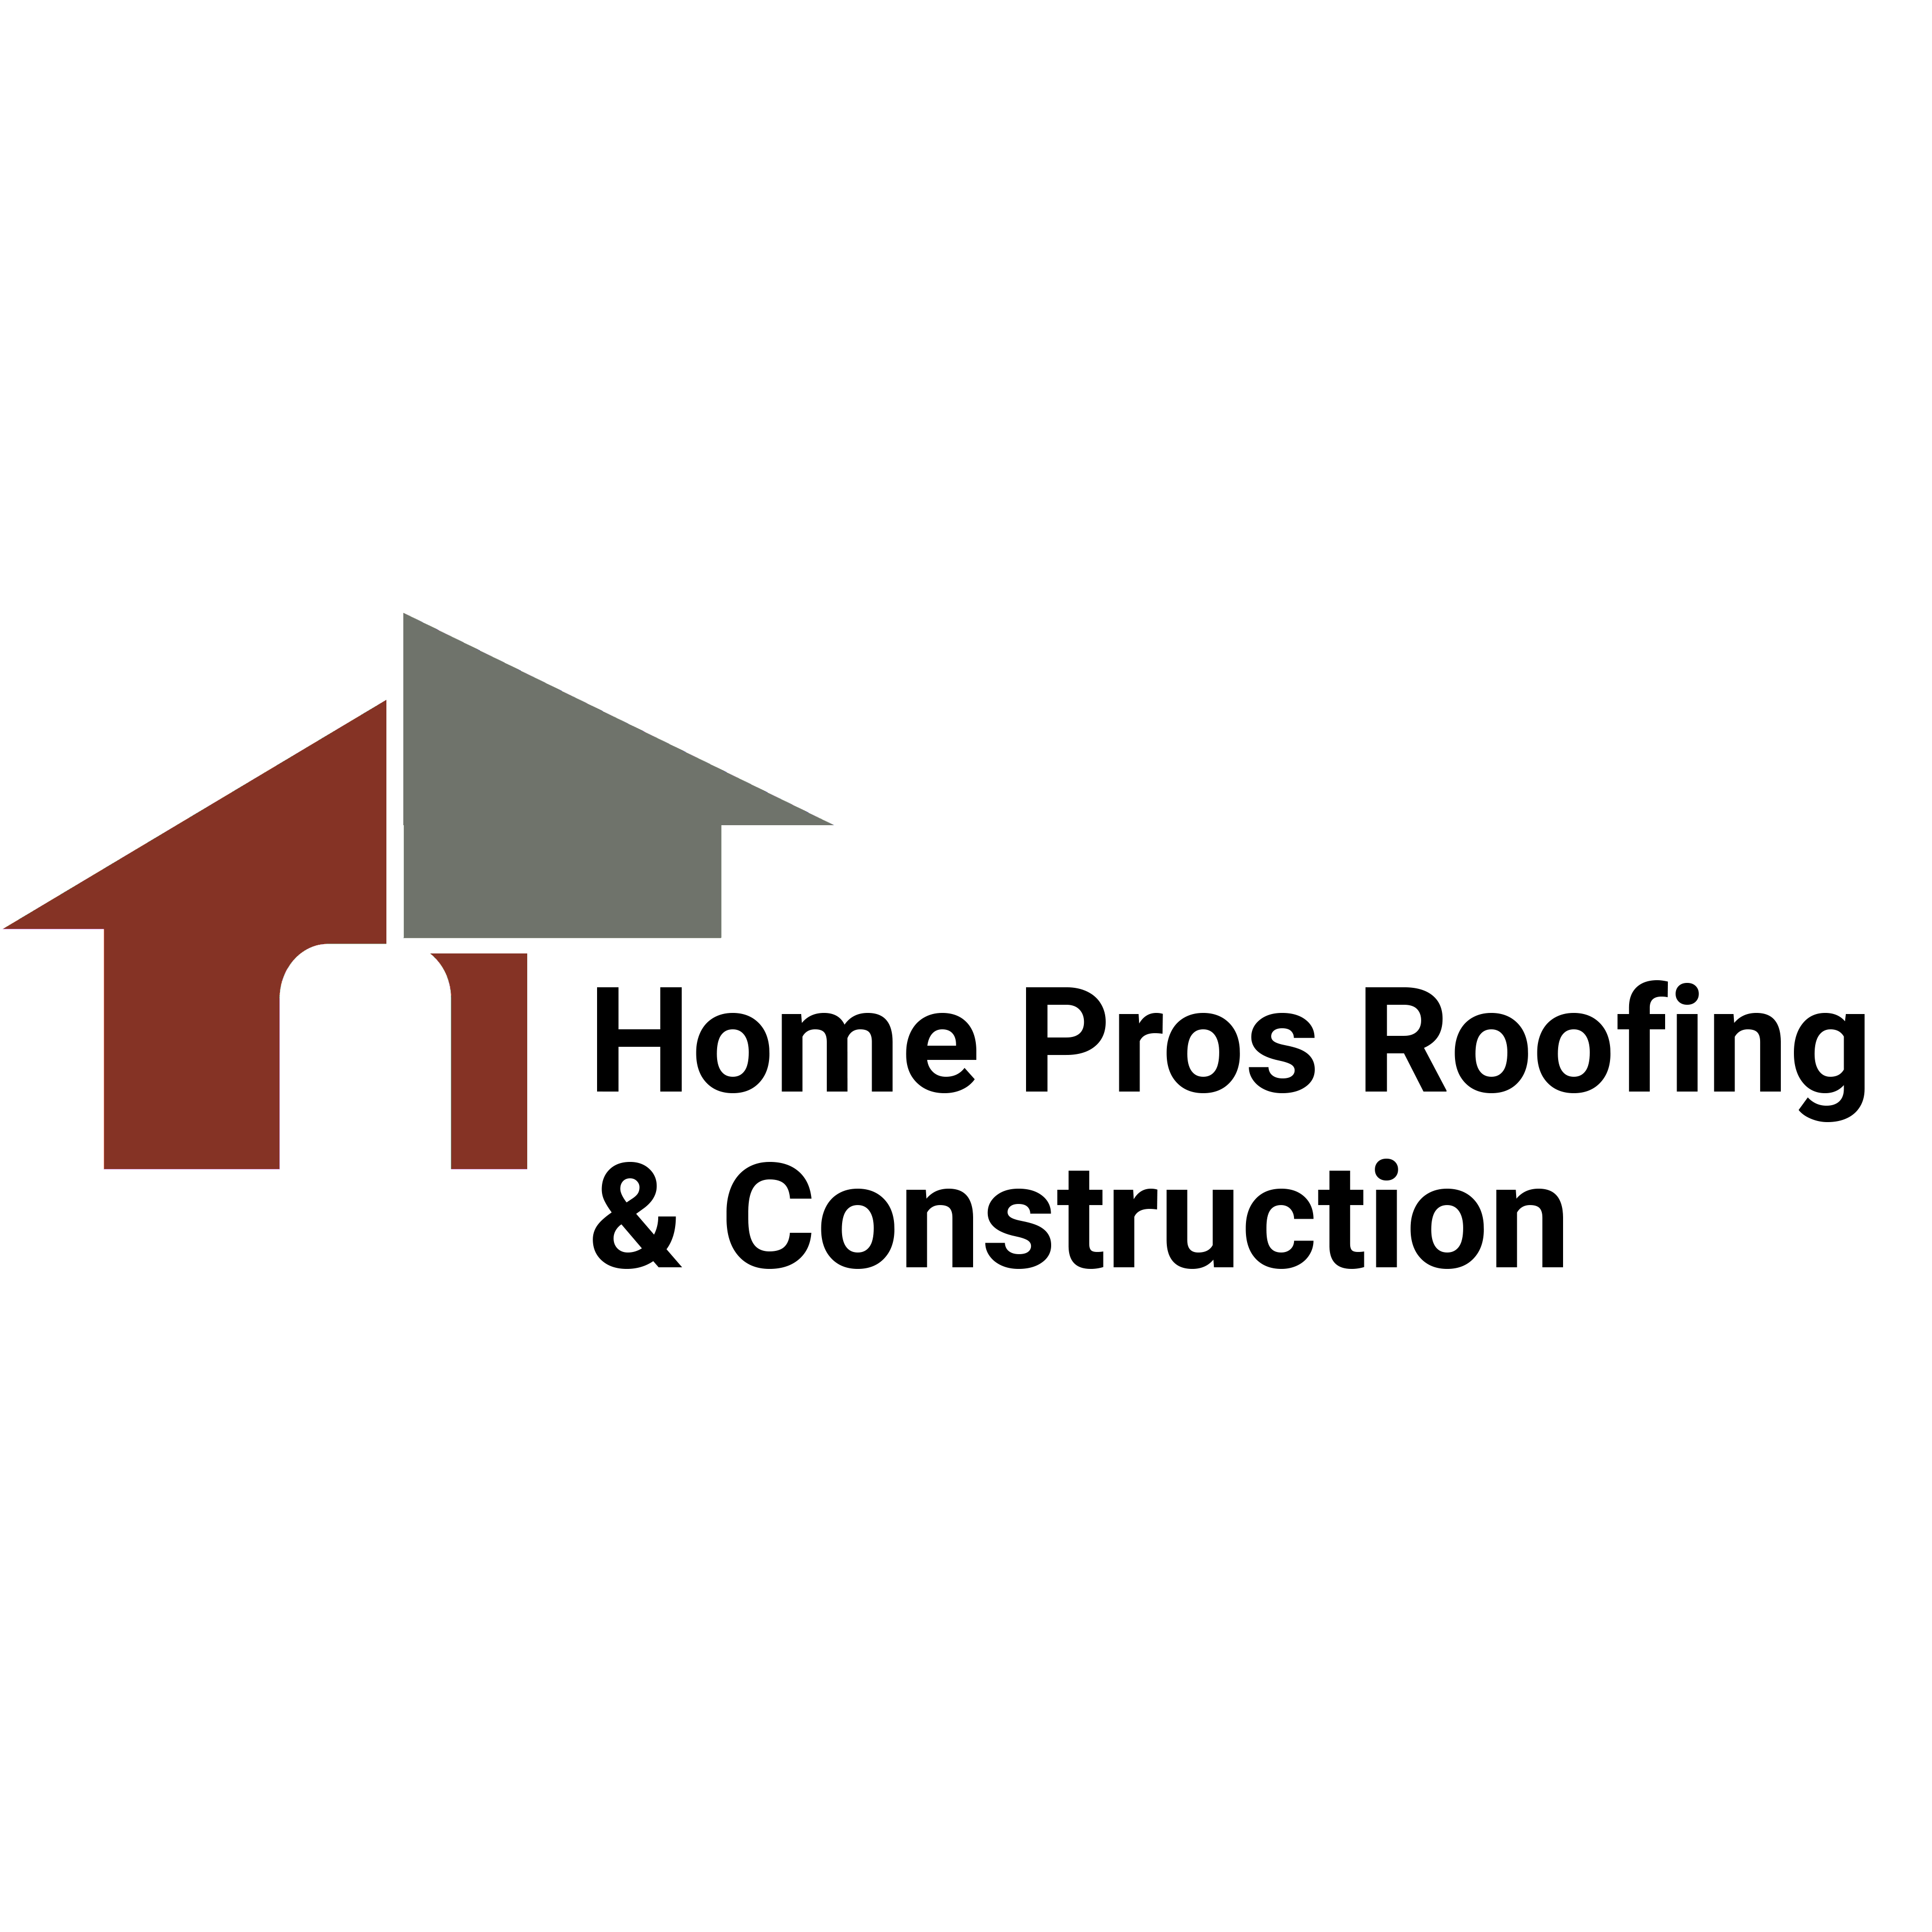 Home Pros Roofing & Construction Logo